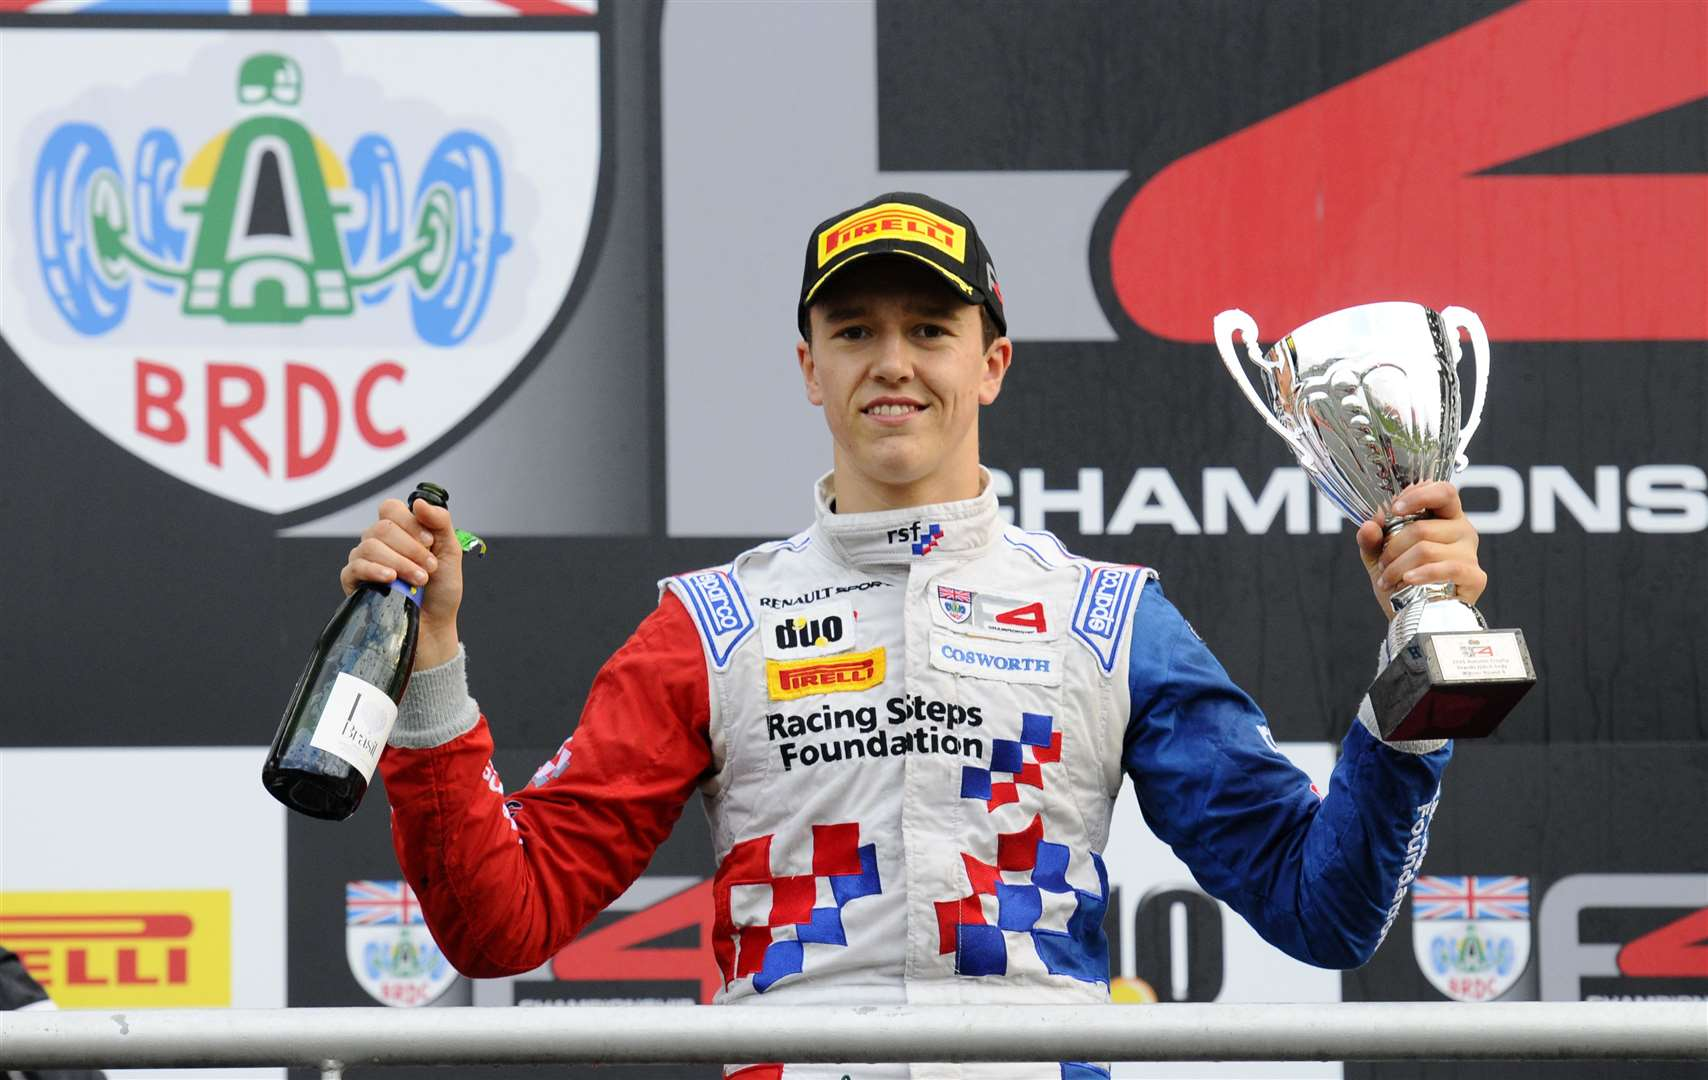 Barnicoat, driving for Fortec Motorsport, claimed the BRDC Formula 4 Autumn Trophy championship win at Brands Hatch in 2015. Picture: Simon Hildrew